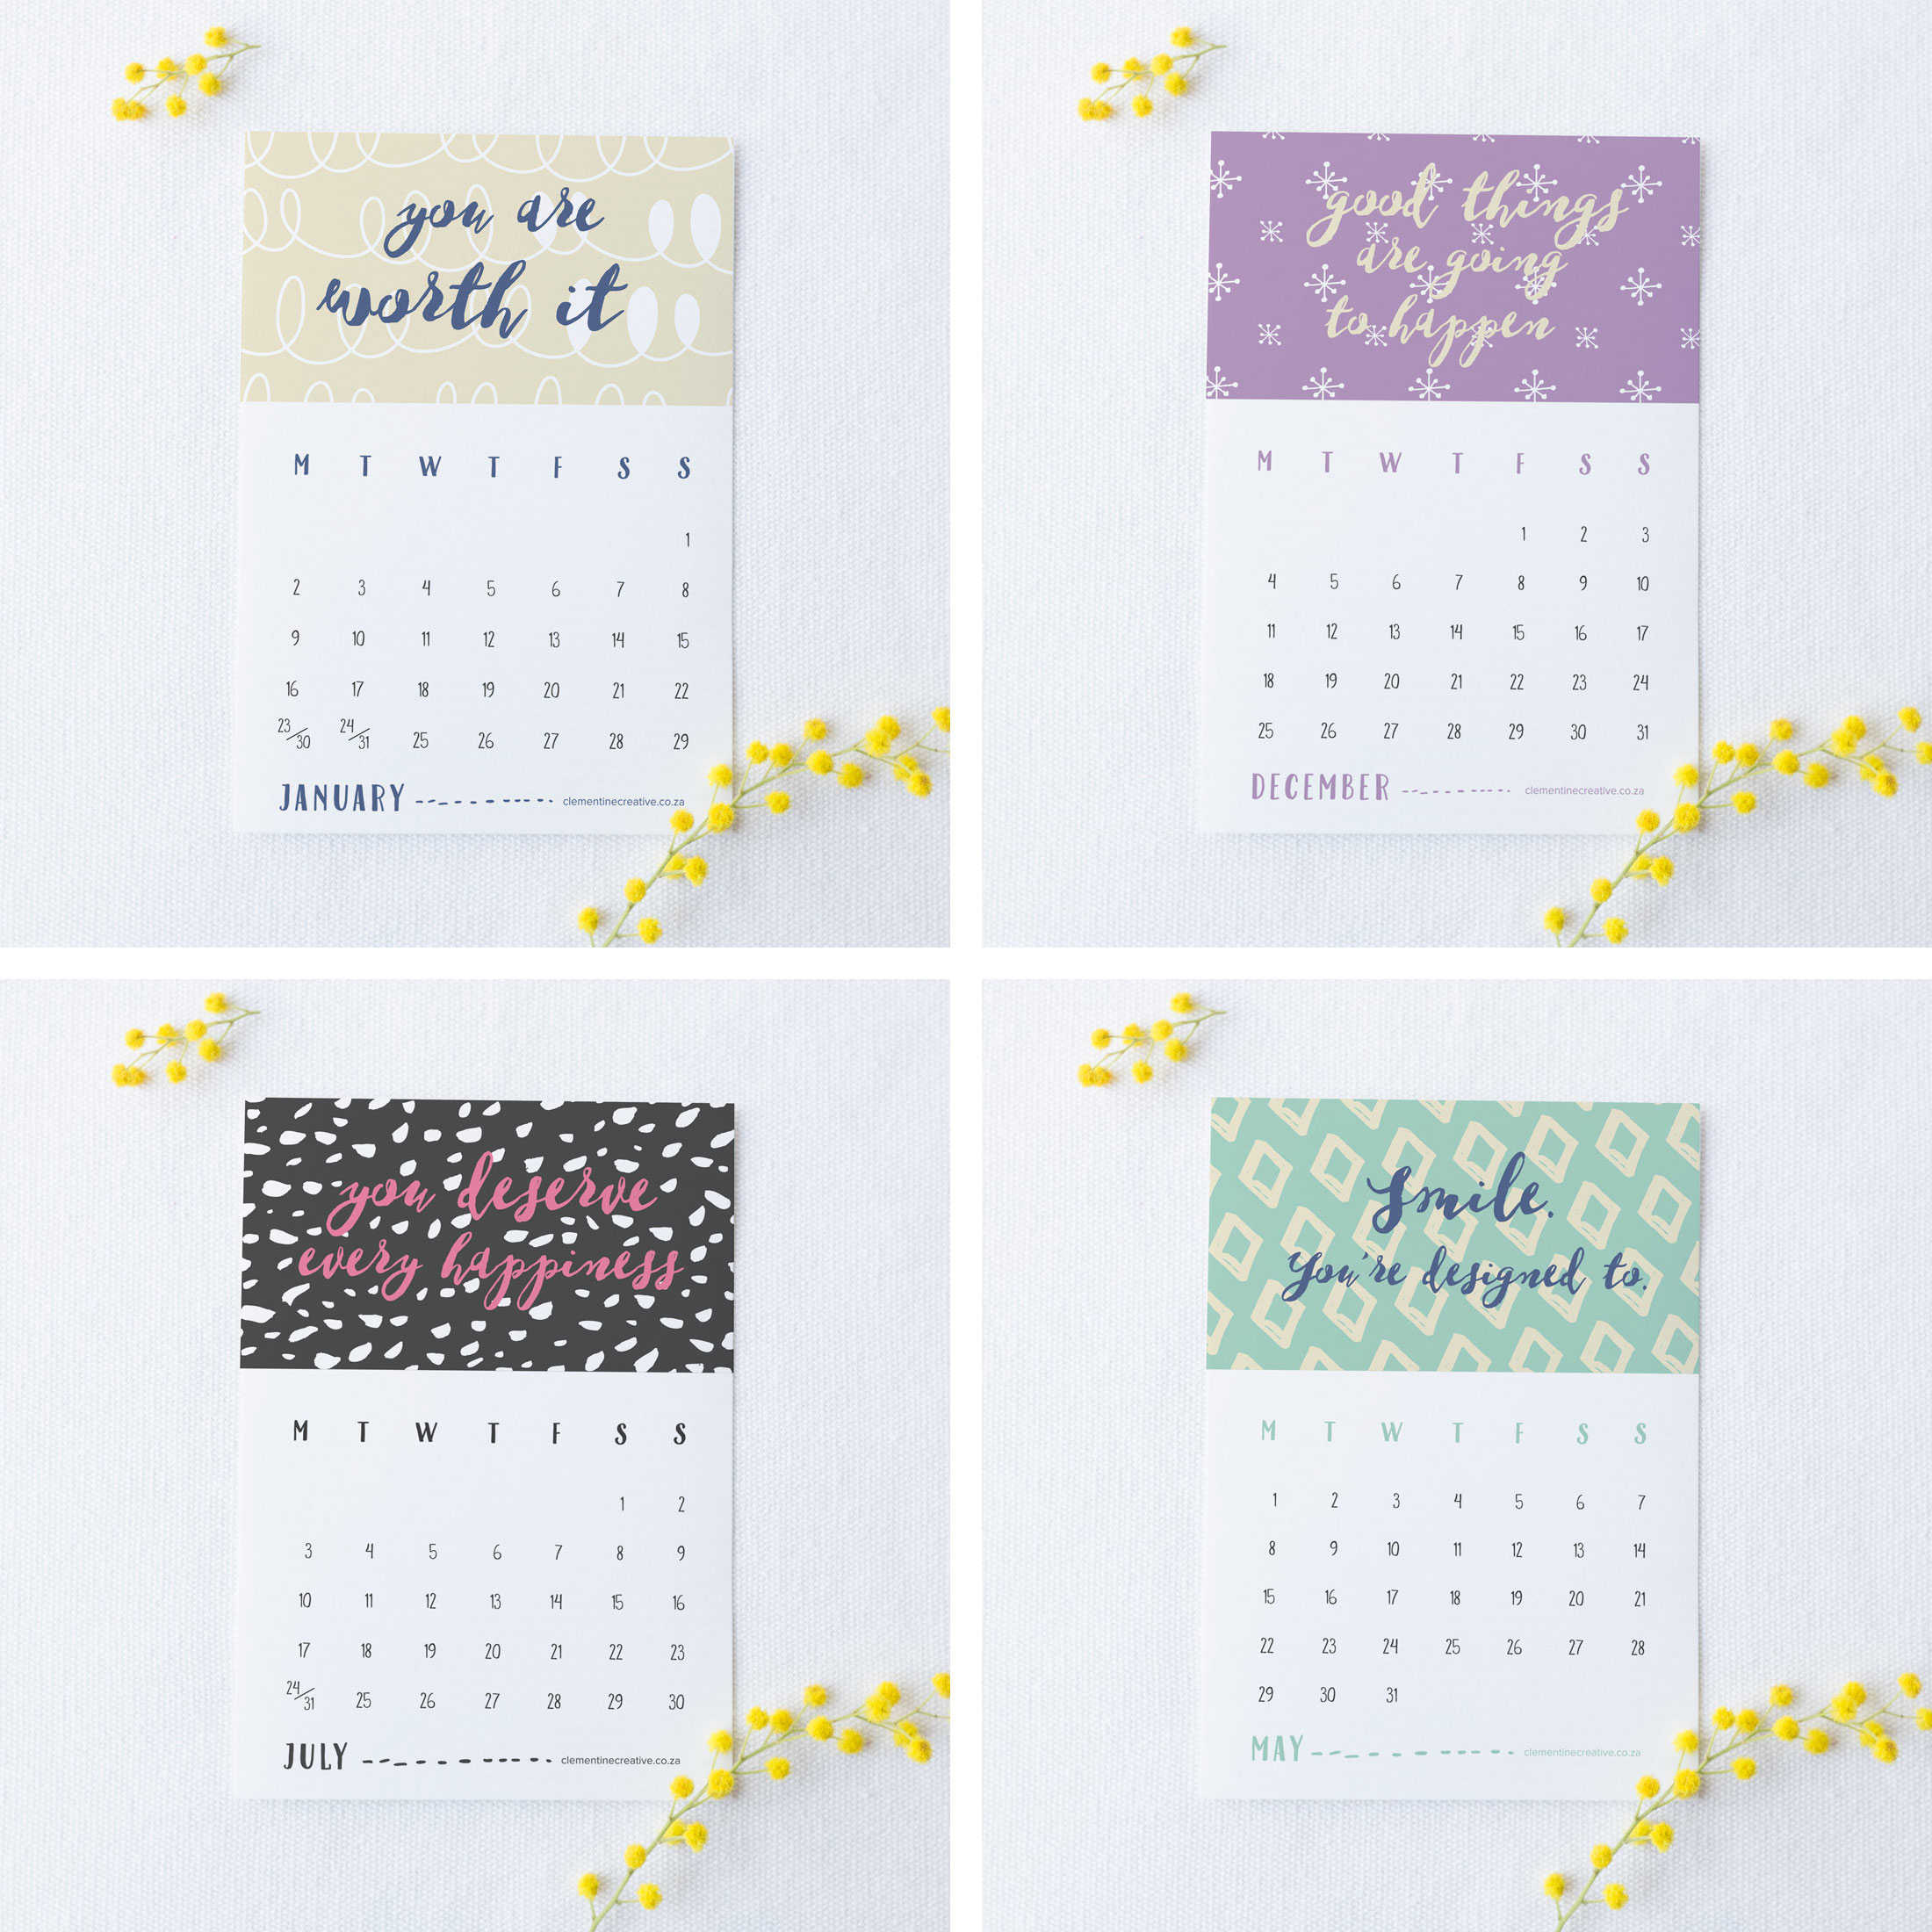 Calendar Quotes For Each Day : Printable desk calendar patterns positivity